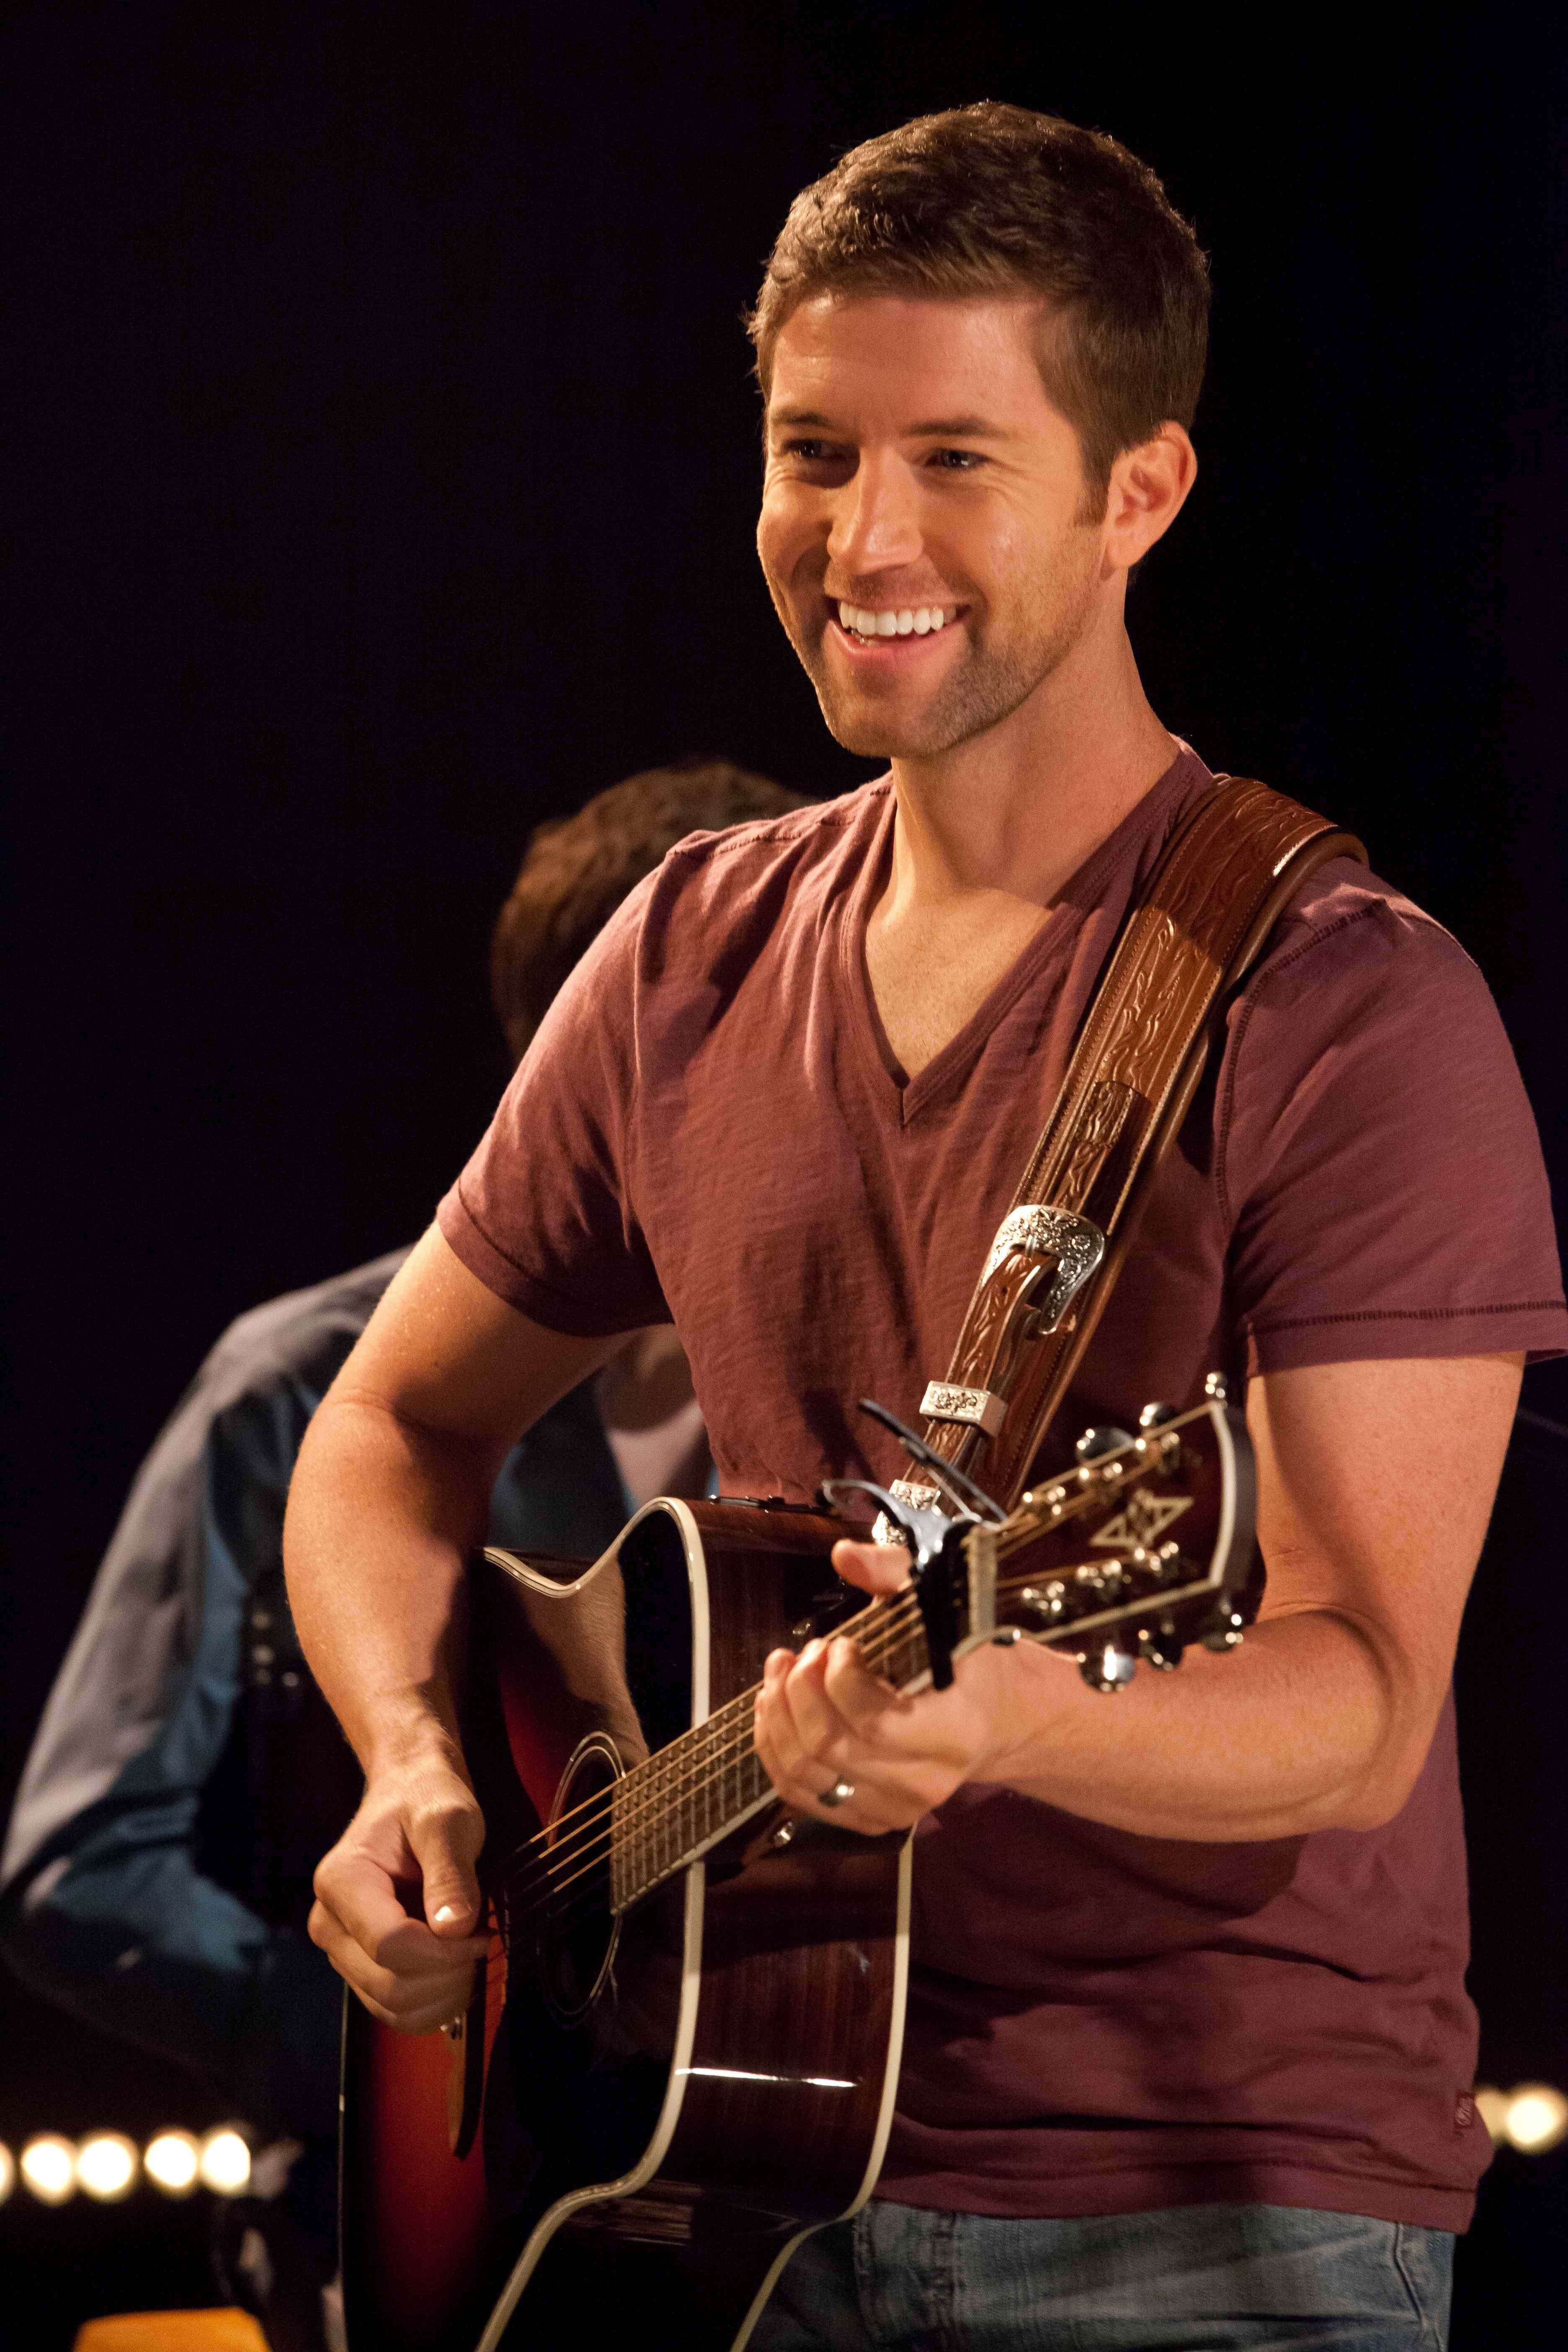 Josh Turner S Exclusive Yahoo Performance Offers Several Rounds With Punching Bag Josh Turner Country Music Country Music Singers